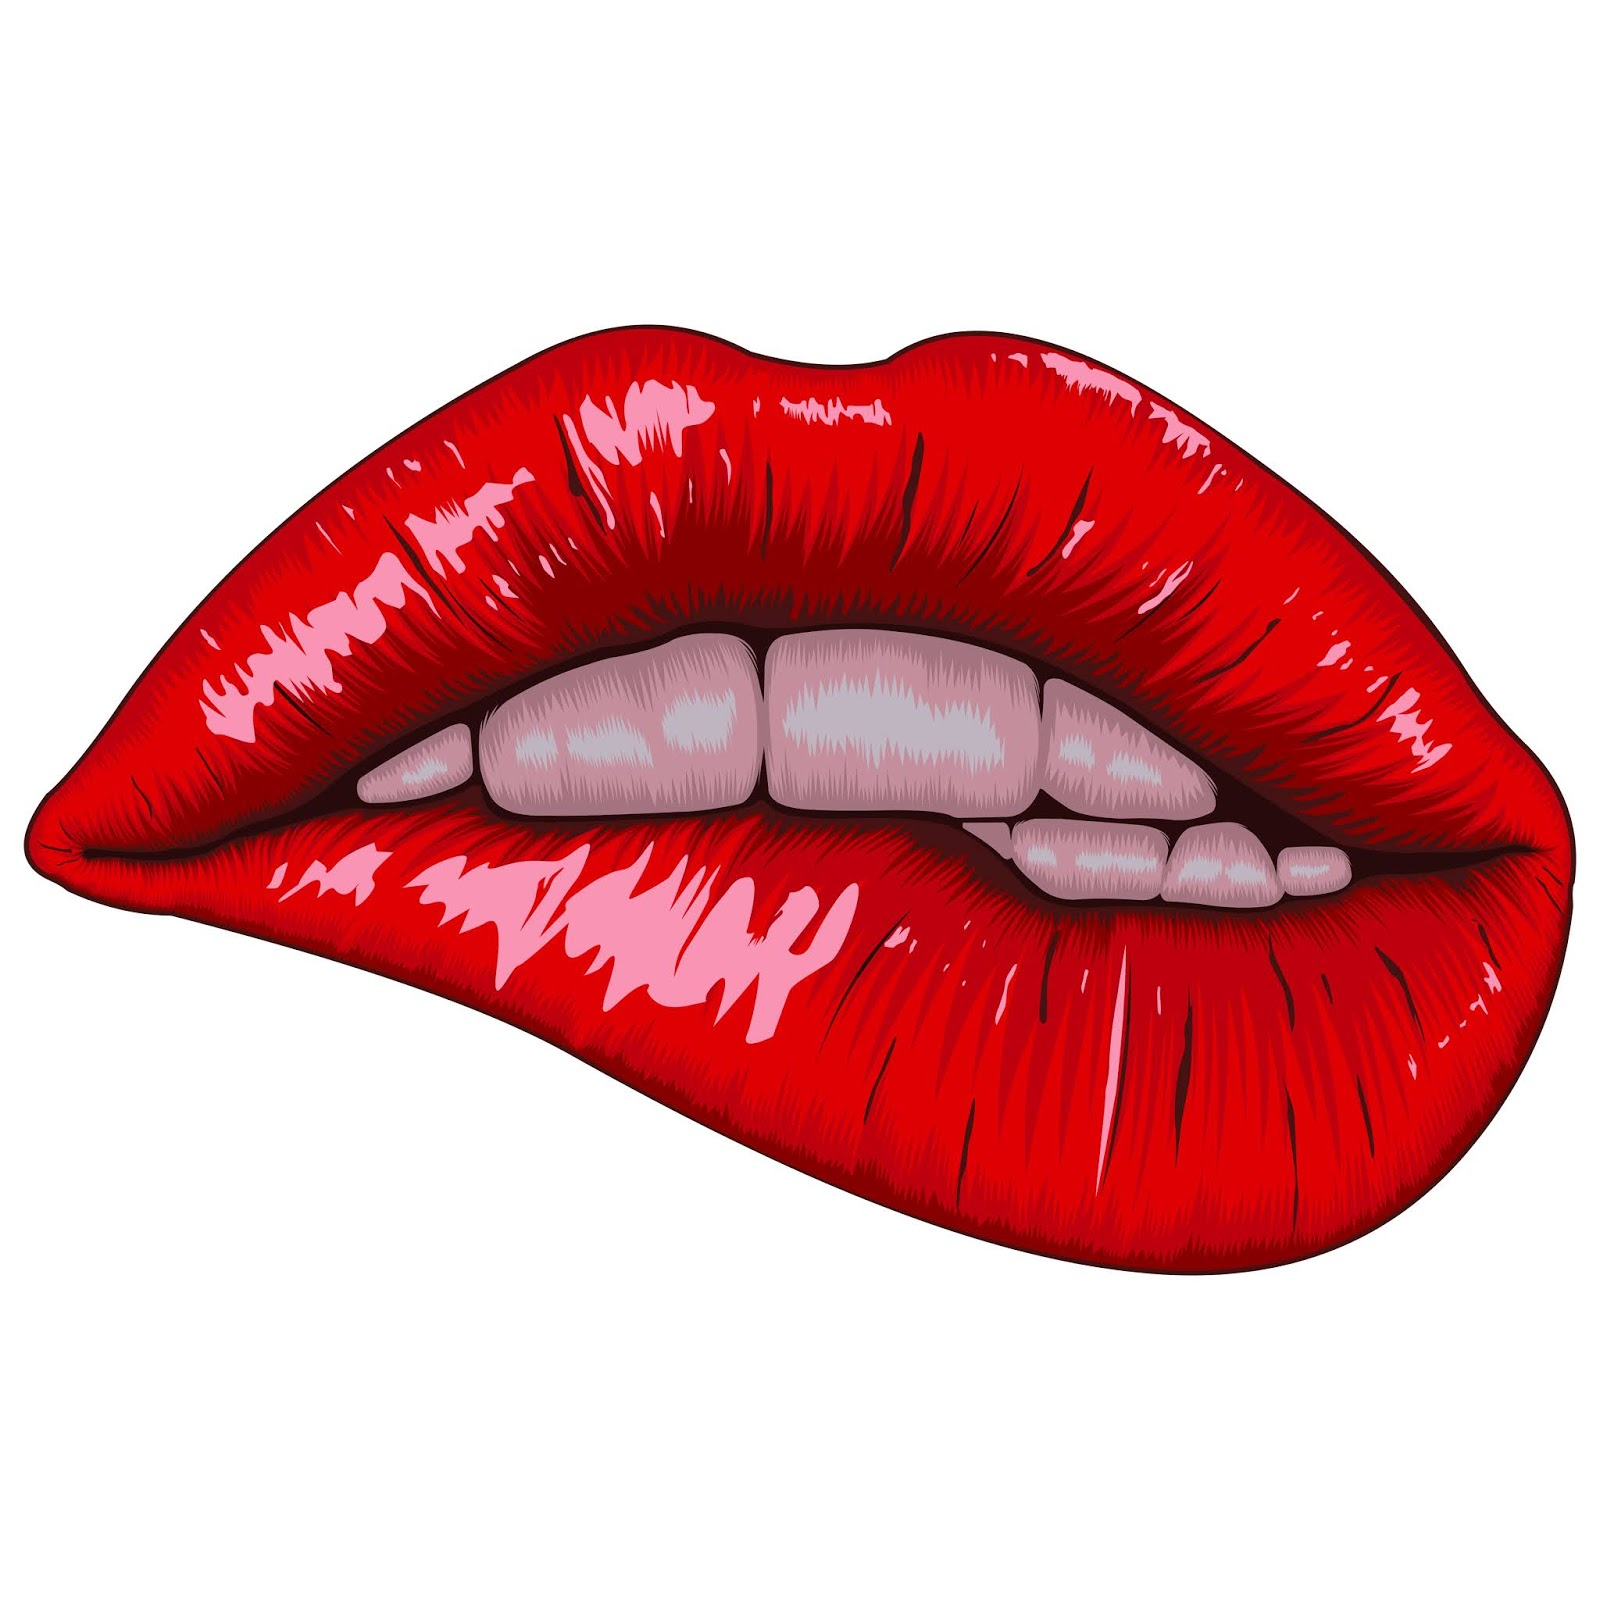 Realistic Lips Illustration Free Download Vector CDR, AI, EPS and PNG Formats